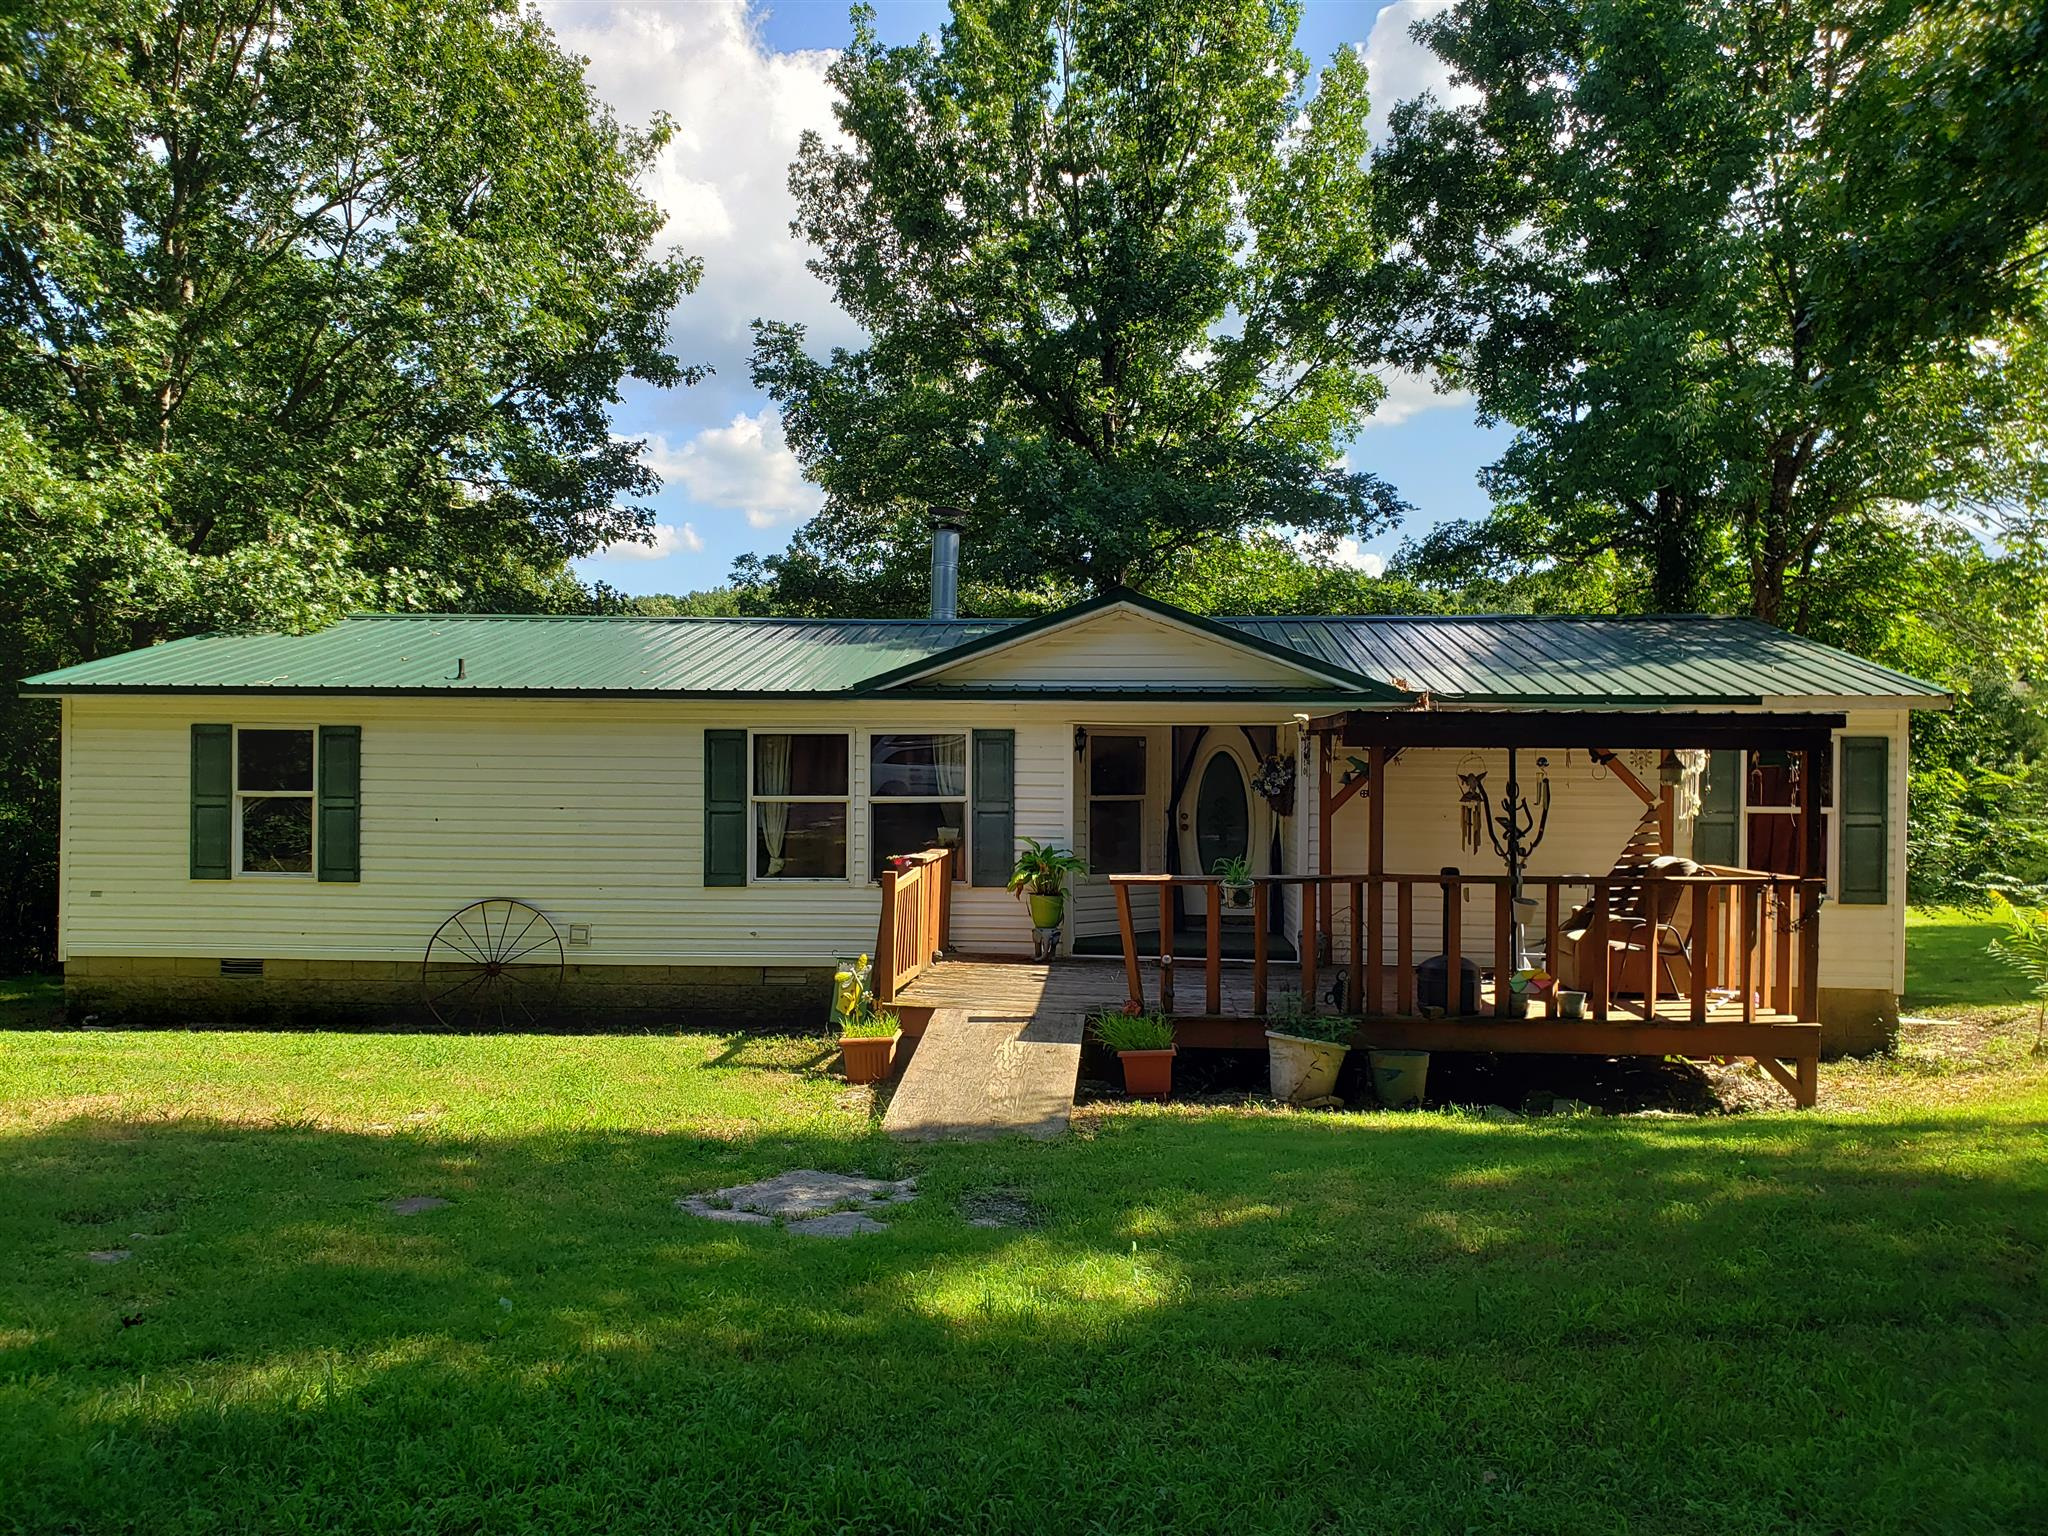 266 Tracy Rd, Watertown, TN 37184 - Watertown, TN real estate listing